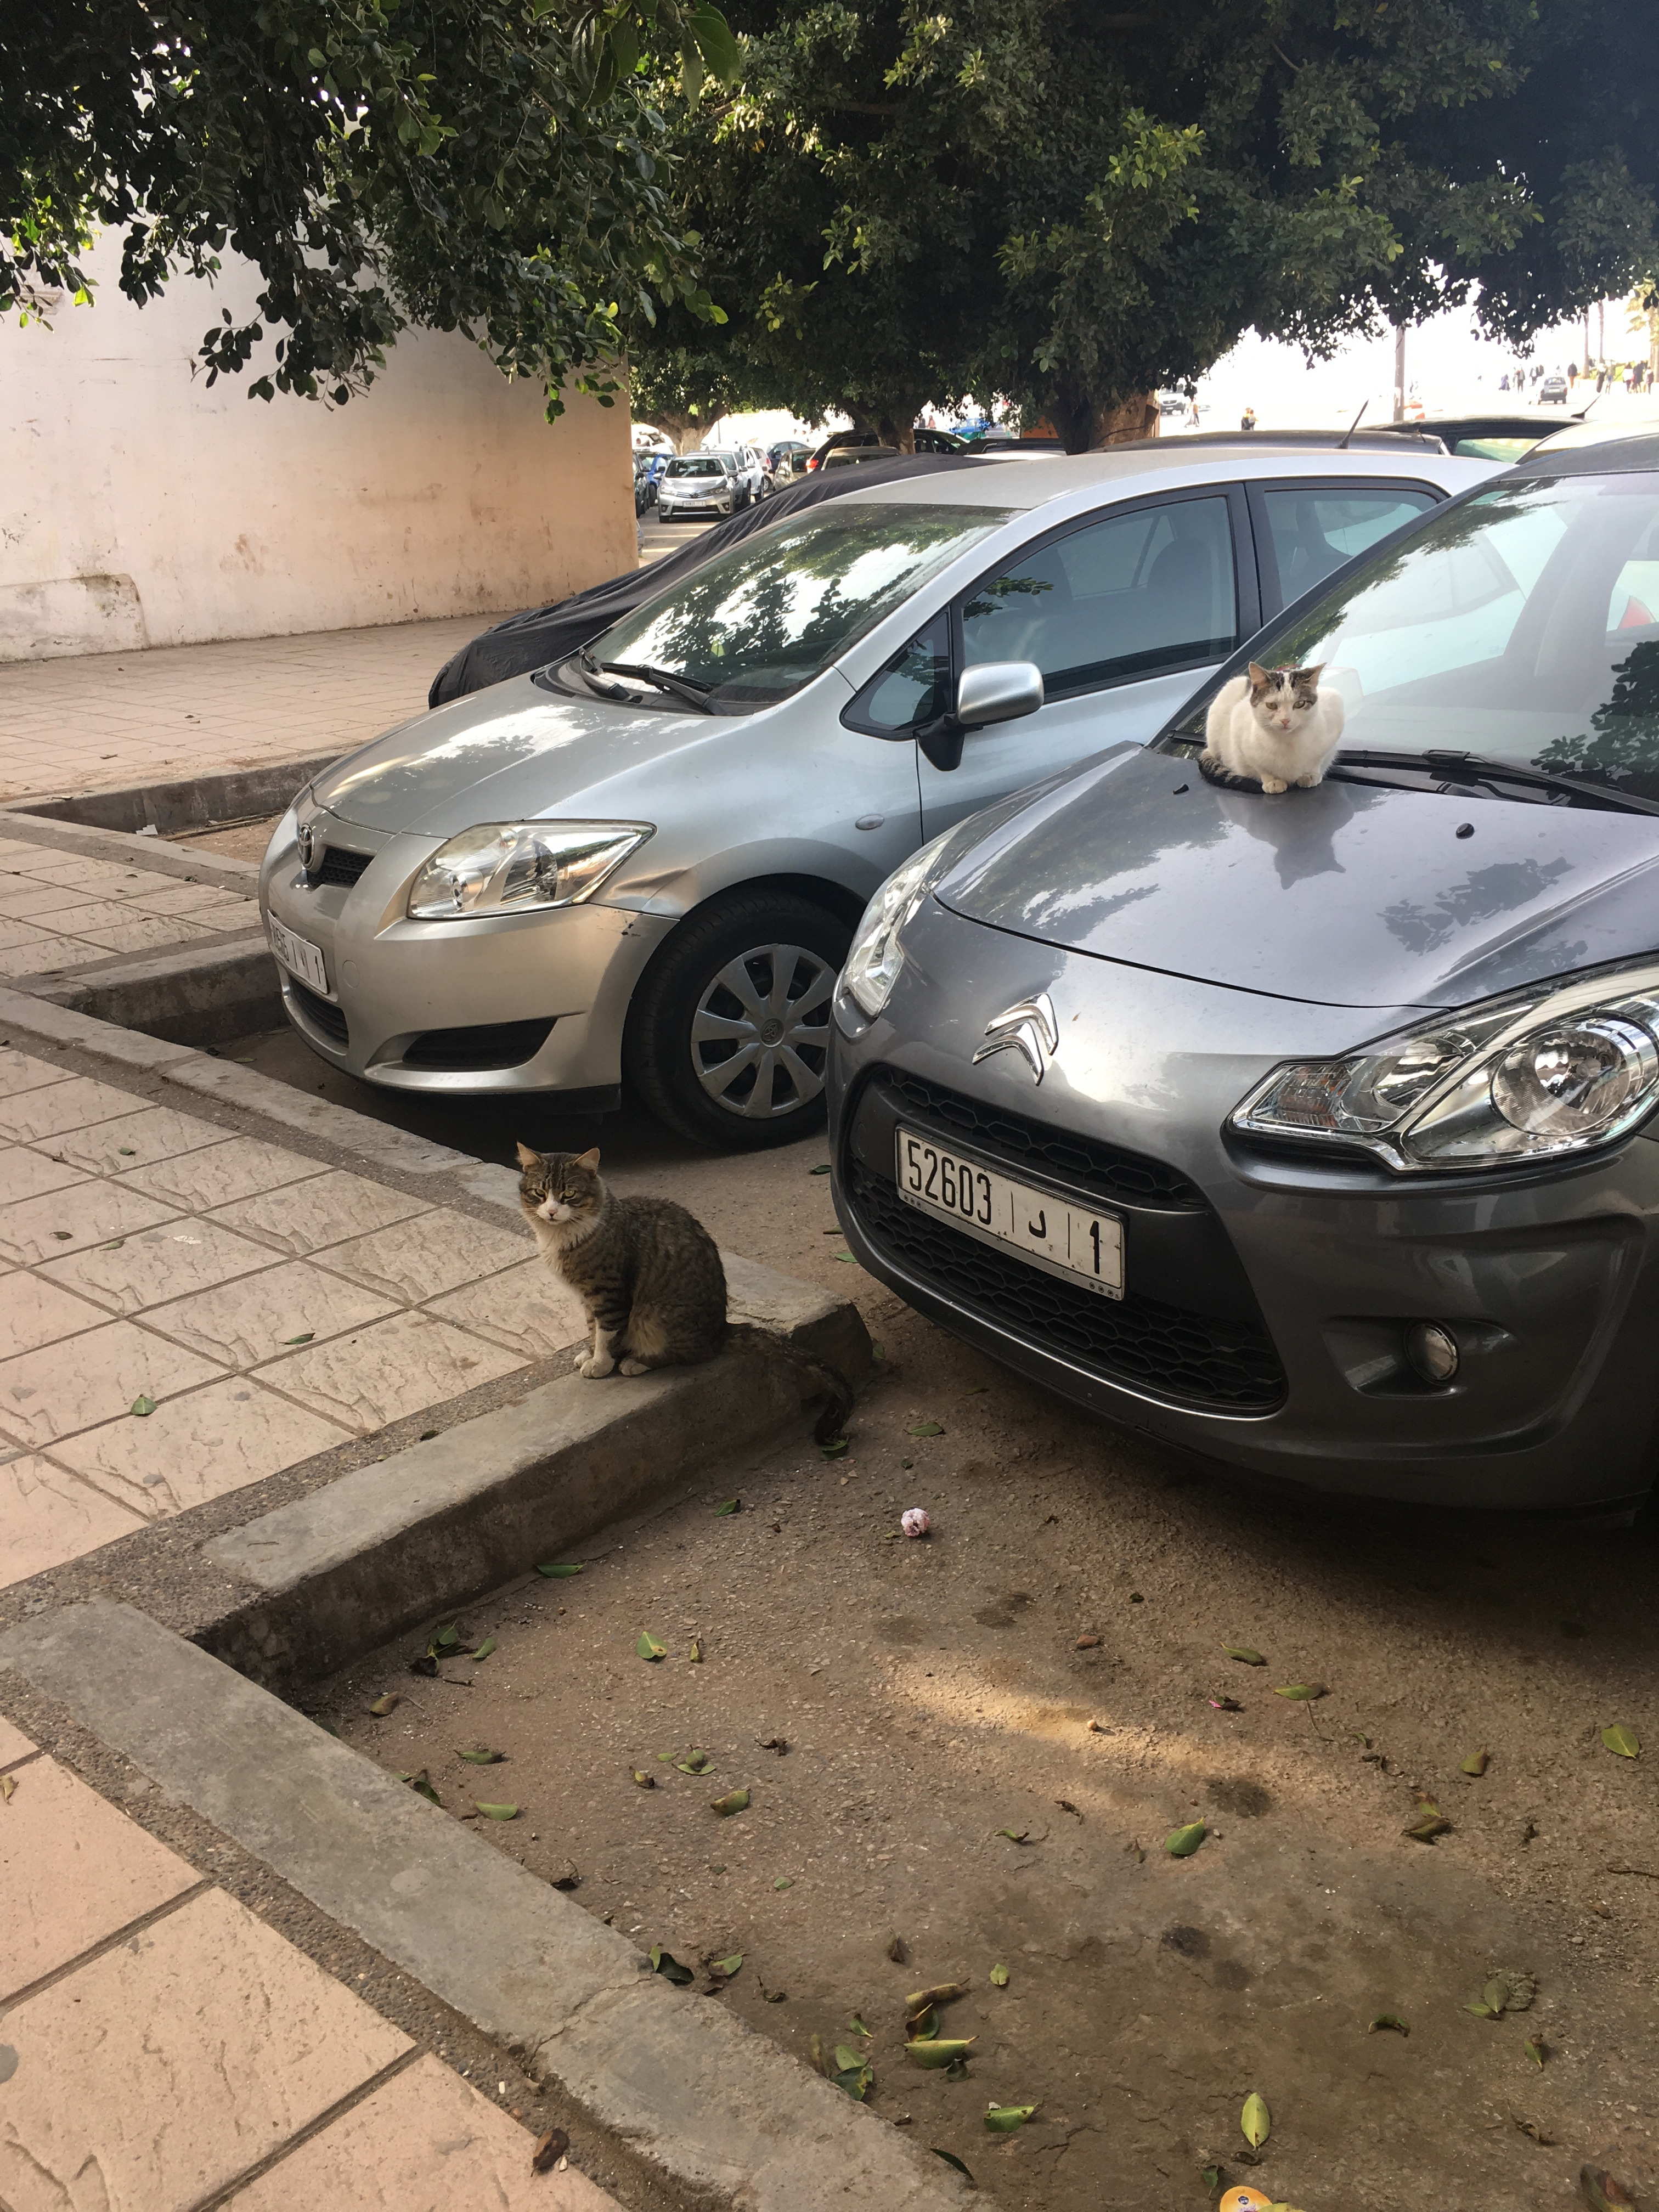 Cats in a parking lot, on cars, making themselves at home